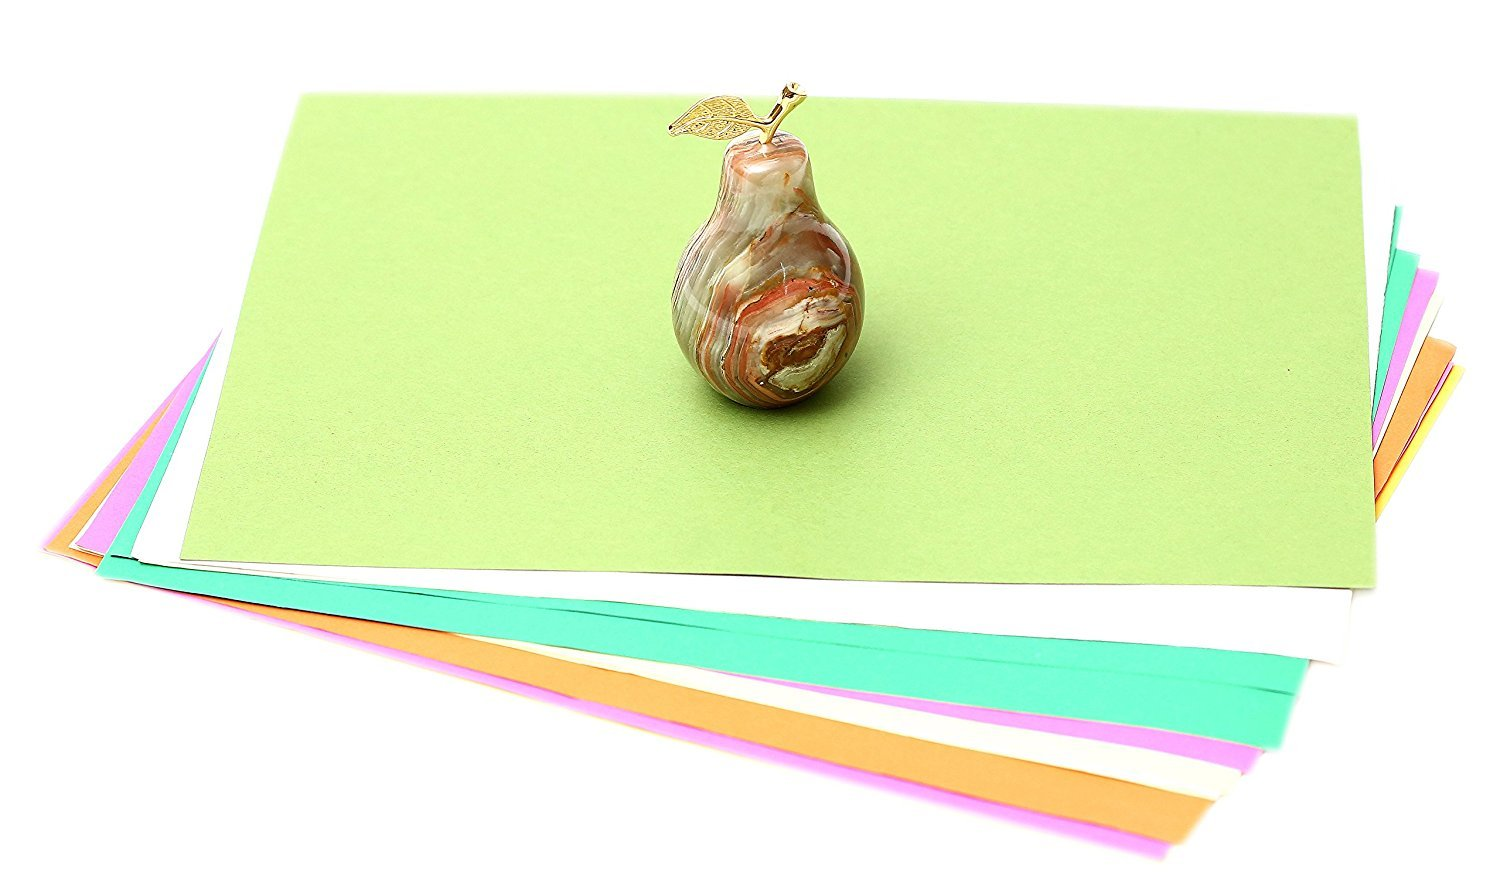 Pear RADICALn Small Home Decor Collection Pear Paperweight Top Home Decor Ideal As Home Decor Gifts Ideas Best for Table and Study Office D/écor Non Glass Pear Paperweight